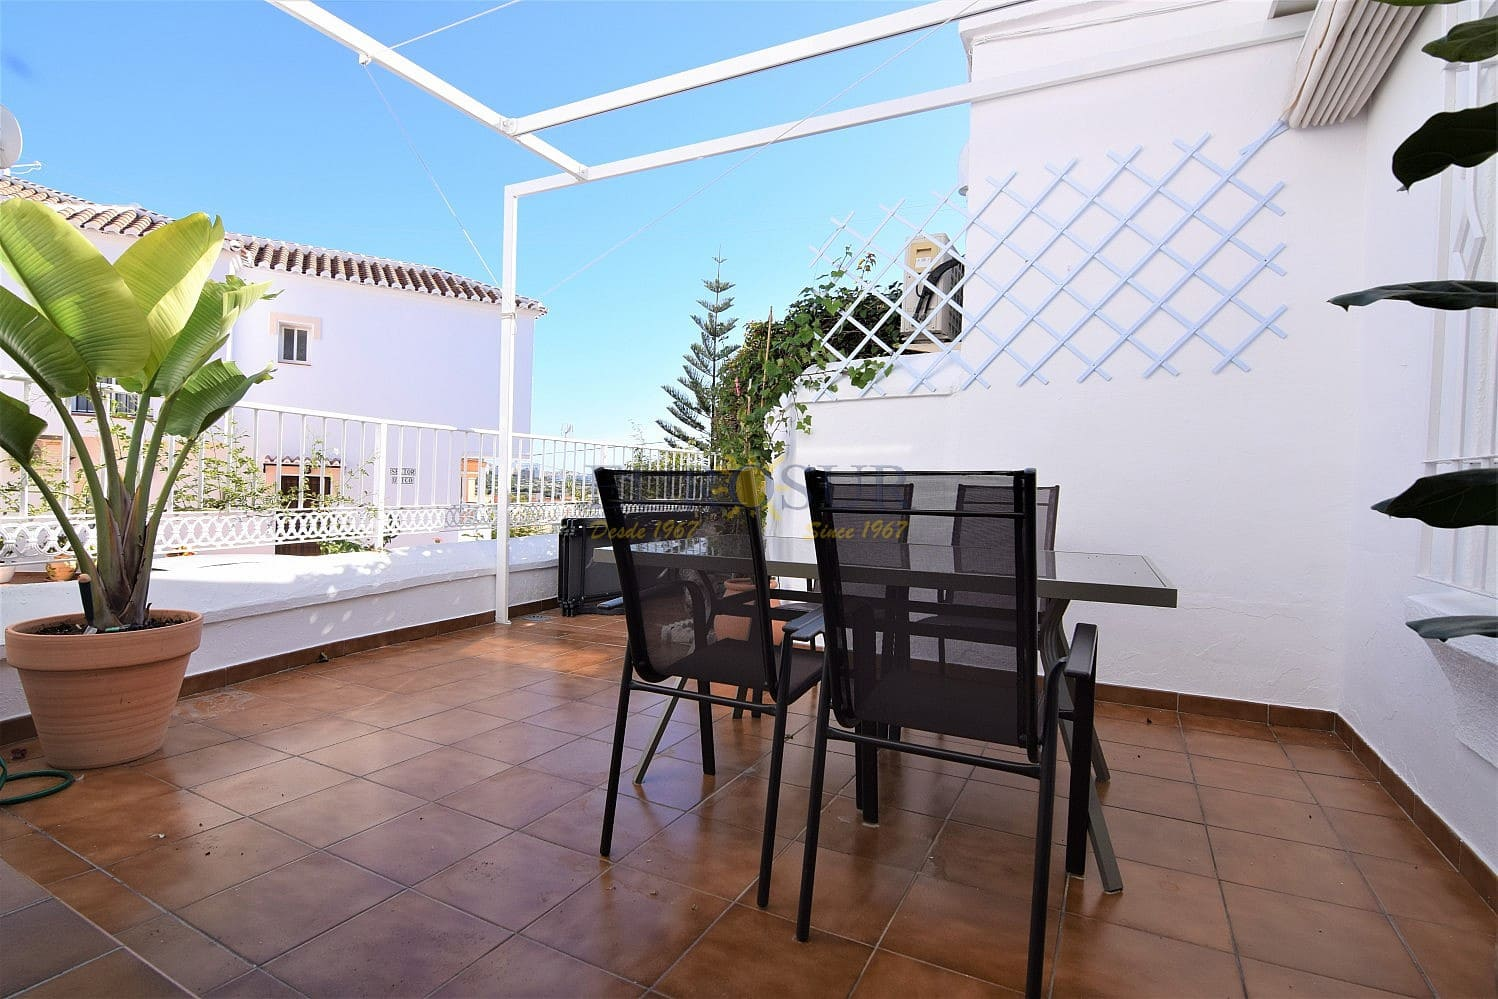 3 bedroom Apartment for sale in Nerja with pool - € 299,000 (Ref: 4957120)